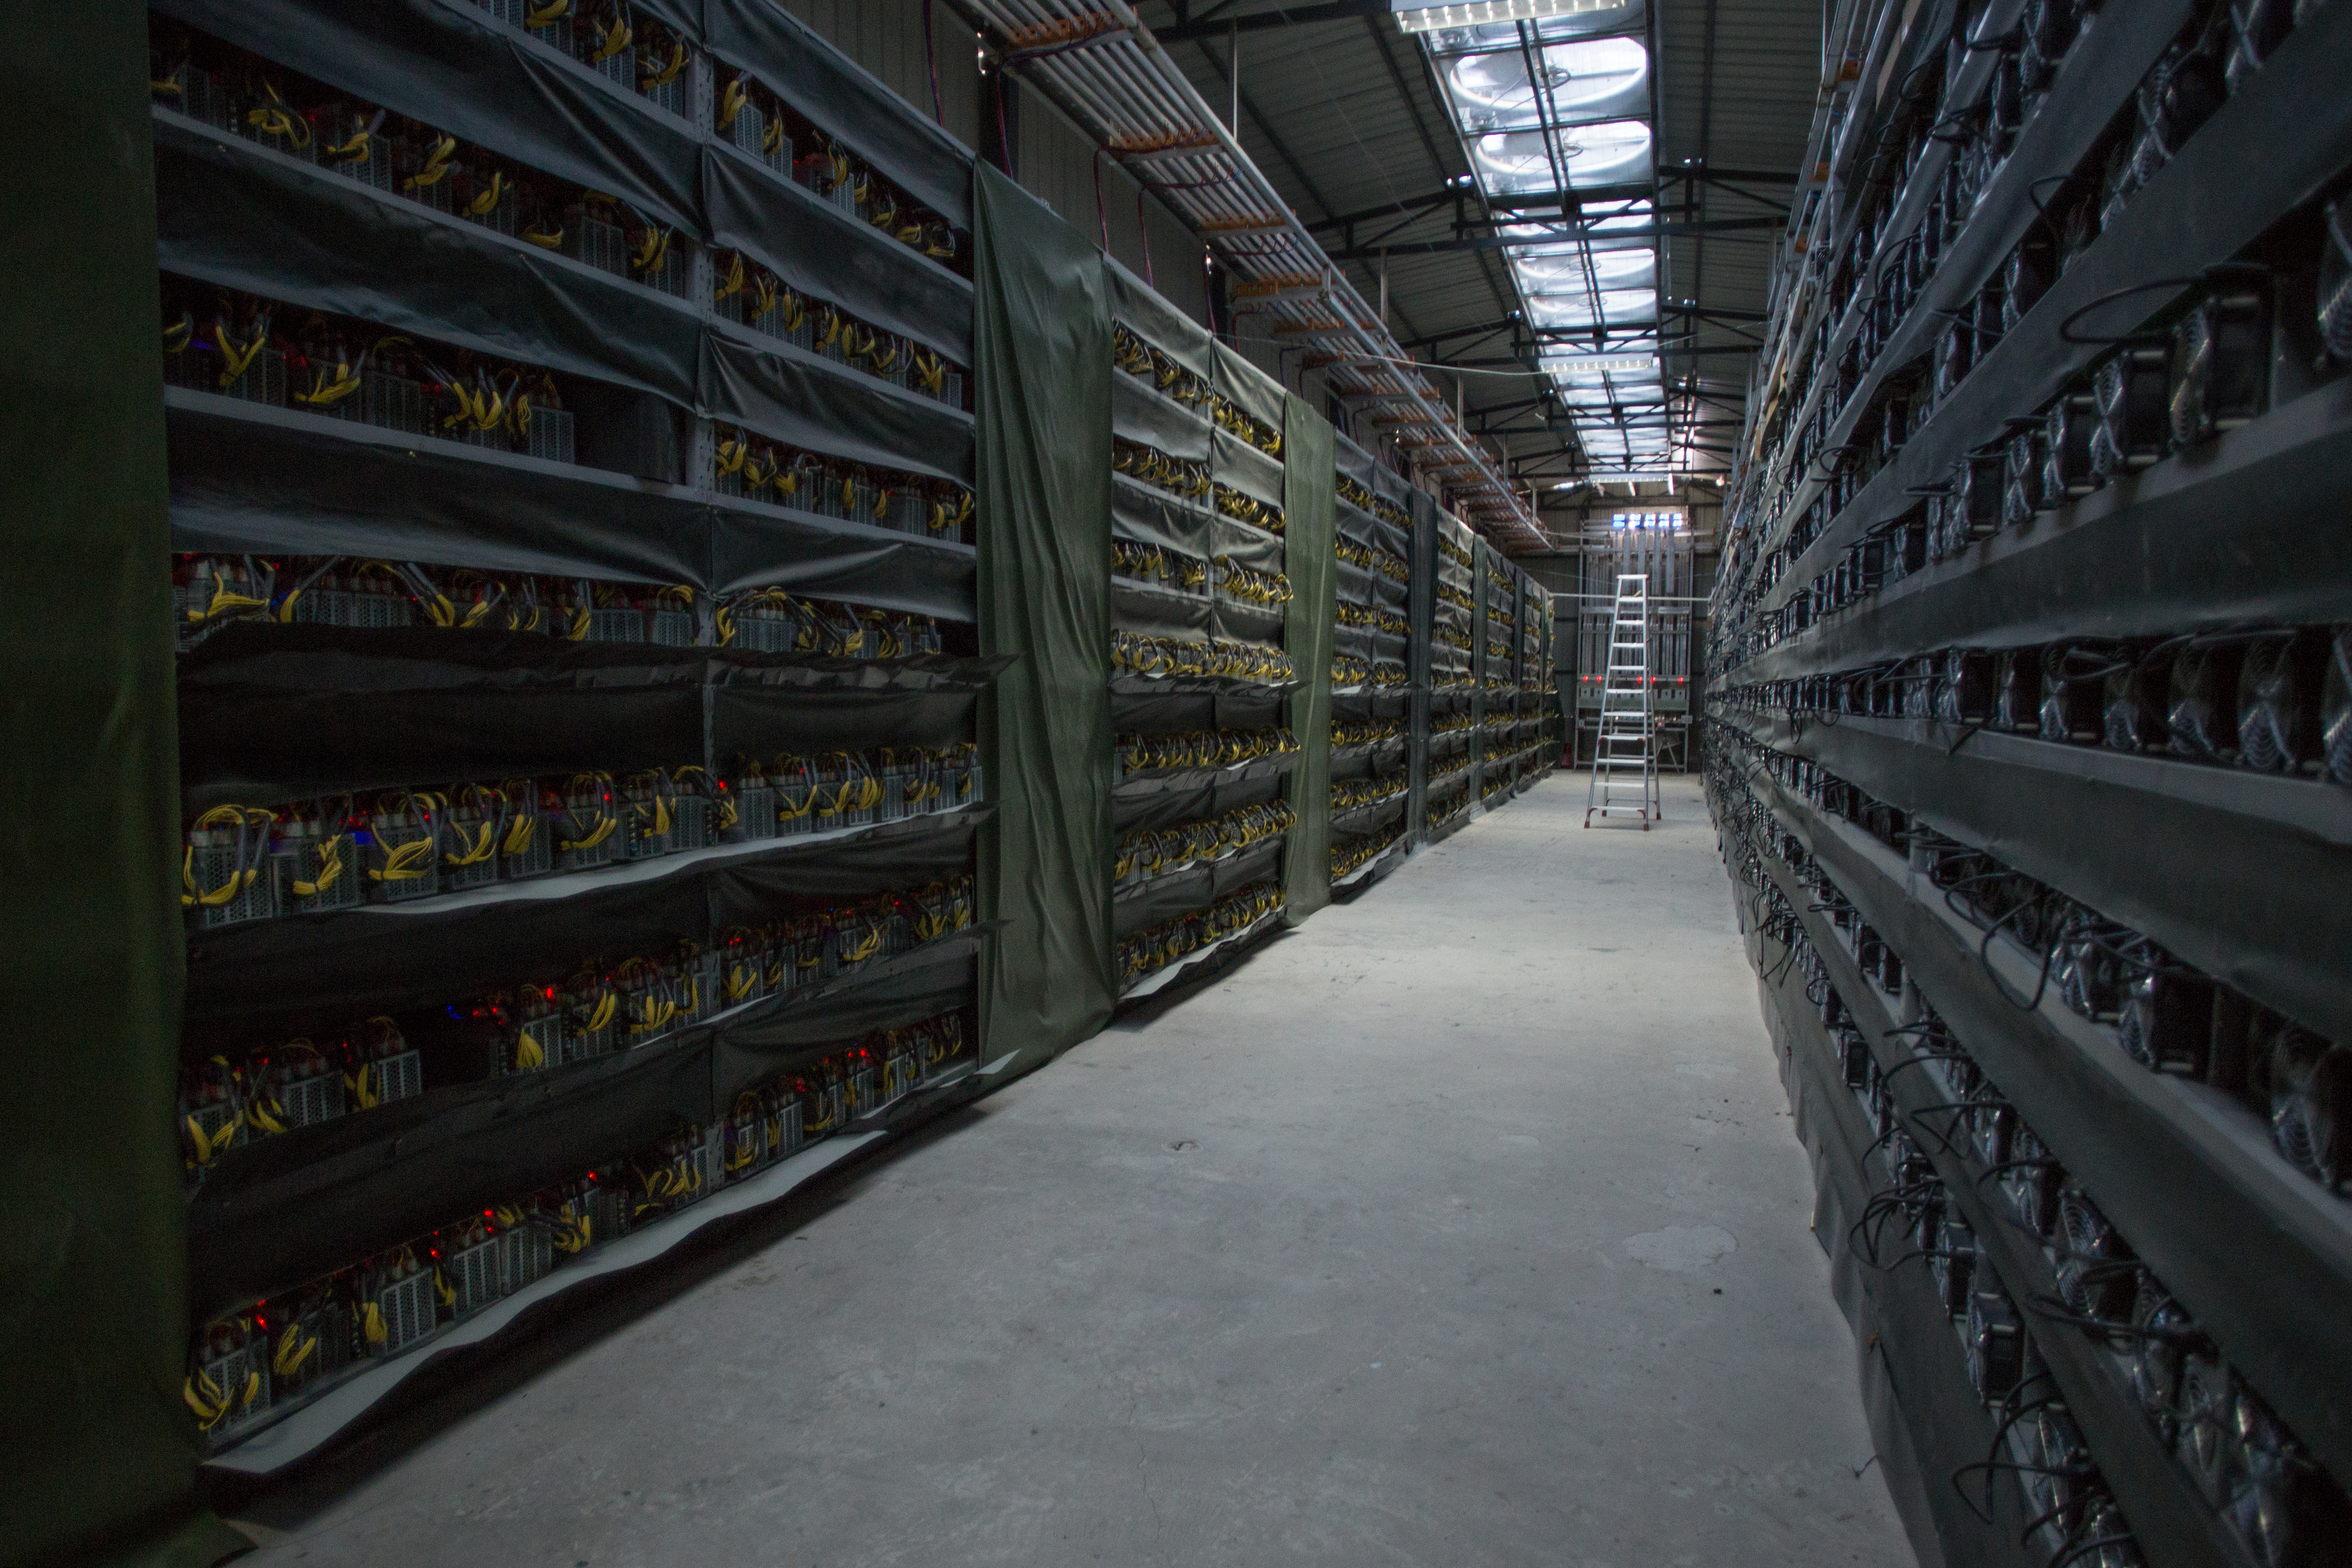 KONGYUXIANG, GARZE, SICHUAN, CHINA - AUGUST 12: The interior of Haobtc's bitcoin mine is pictured near Kongyuxiang, Sichuan, China. (Photo by Paul Ratje/For The Washington Post via Getty Images)